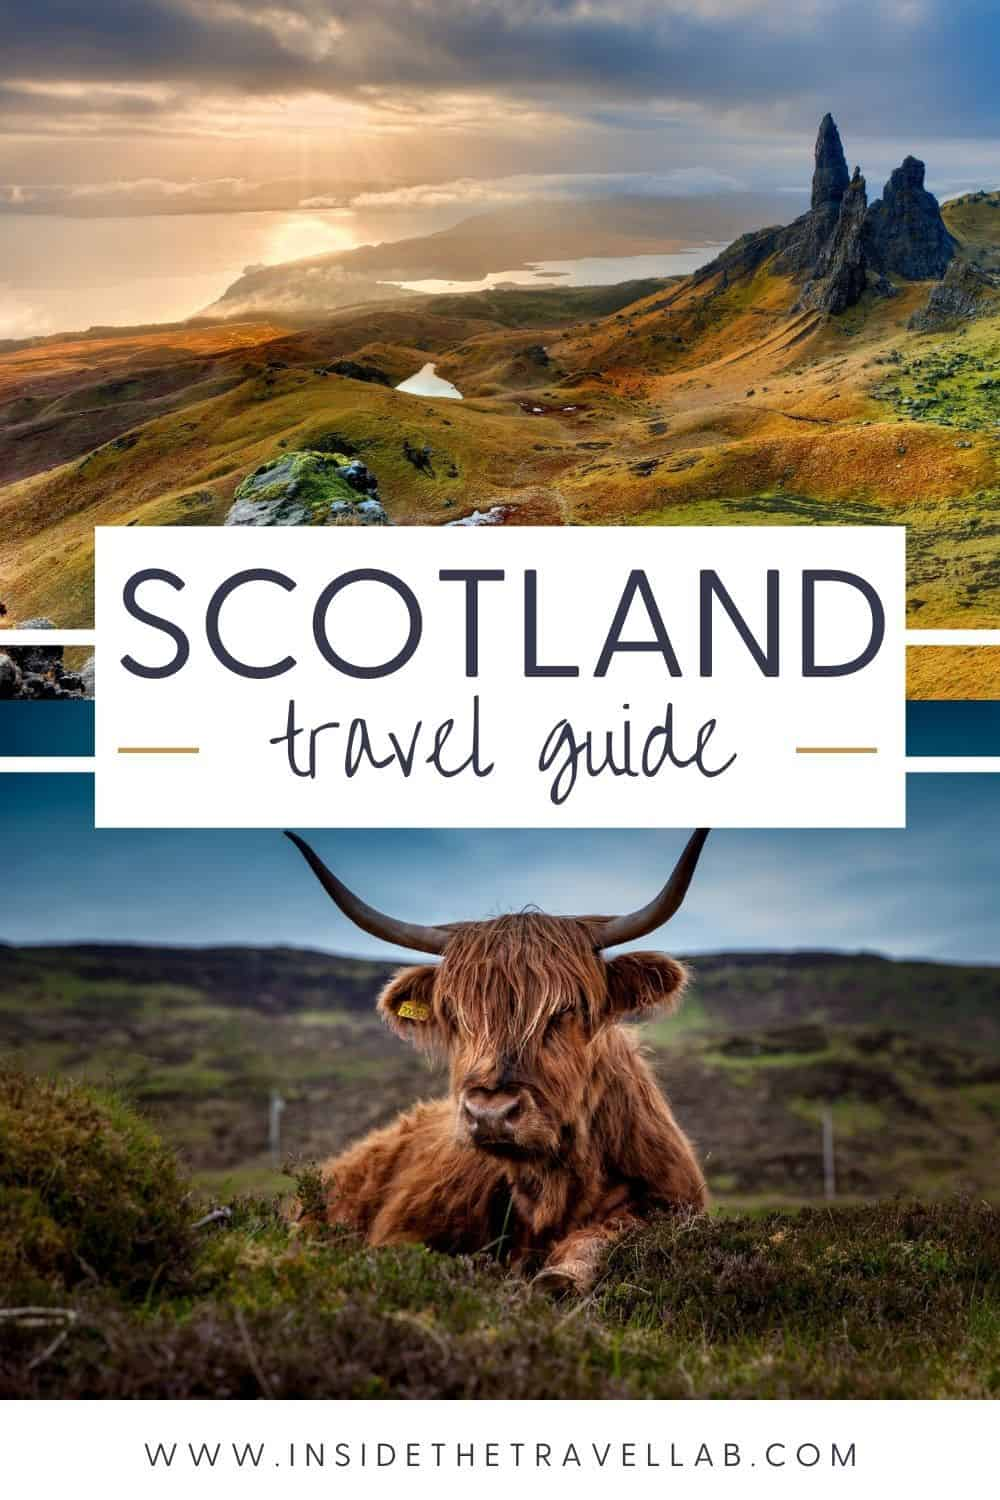 Scotland Travel Guide - Scotland road trip itineraries cover